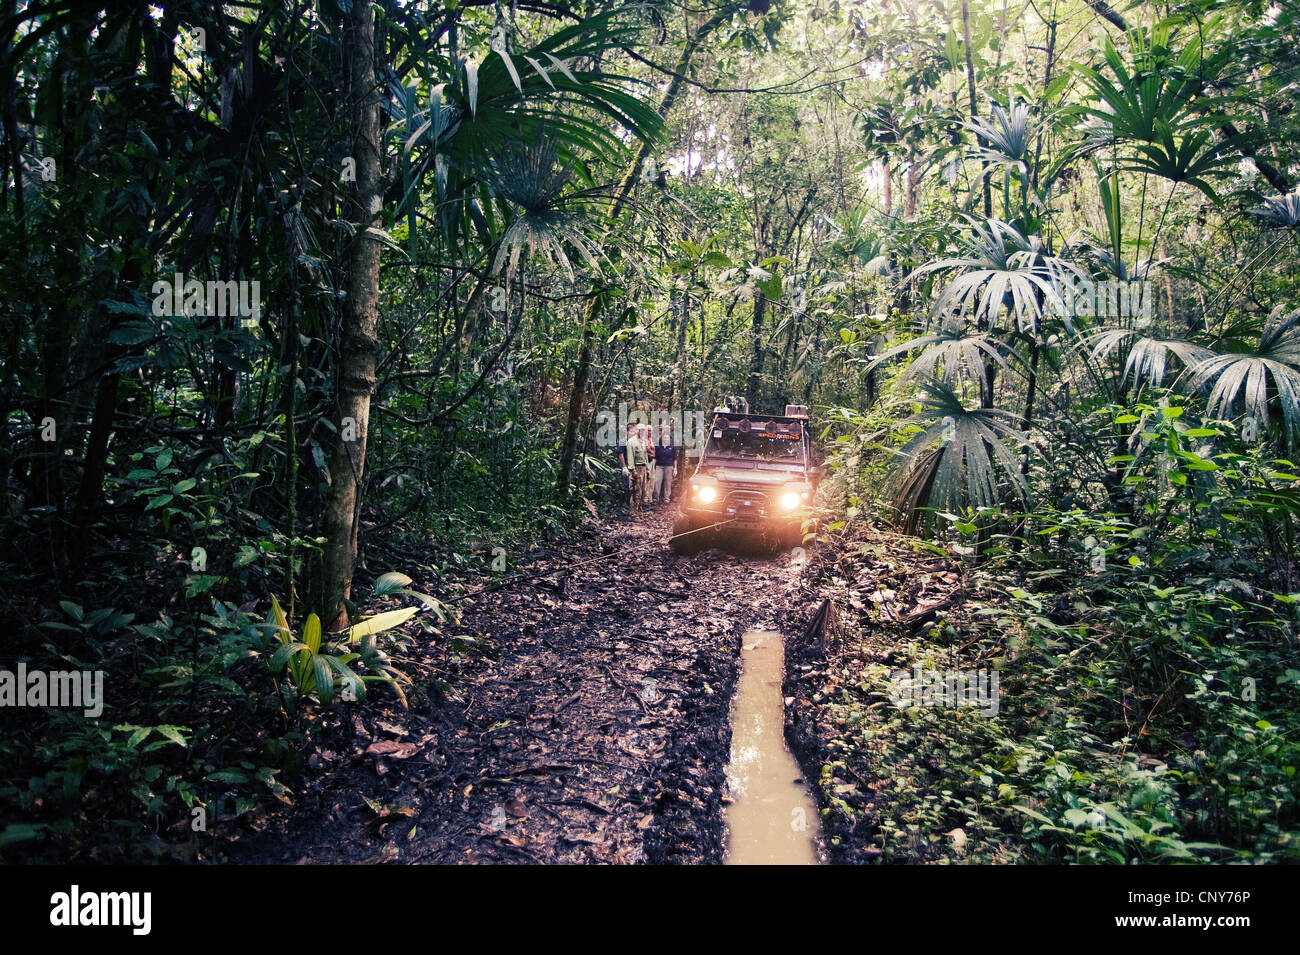 Monkey river trail, Belize Photo Stock